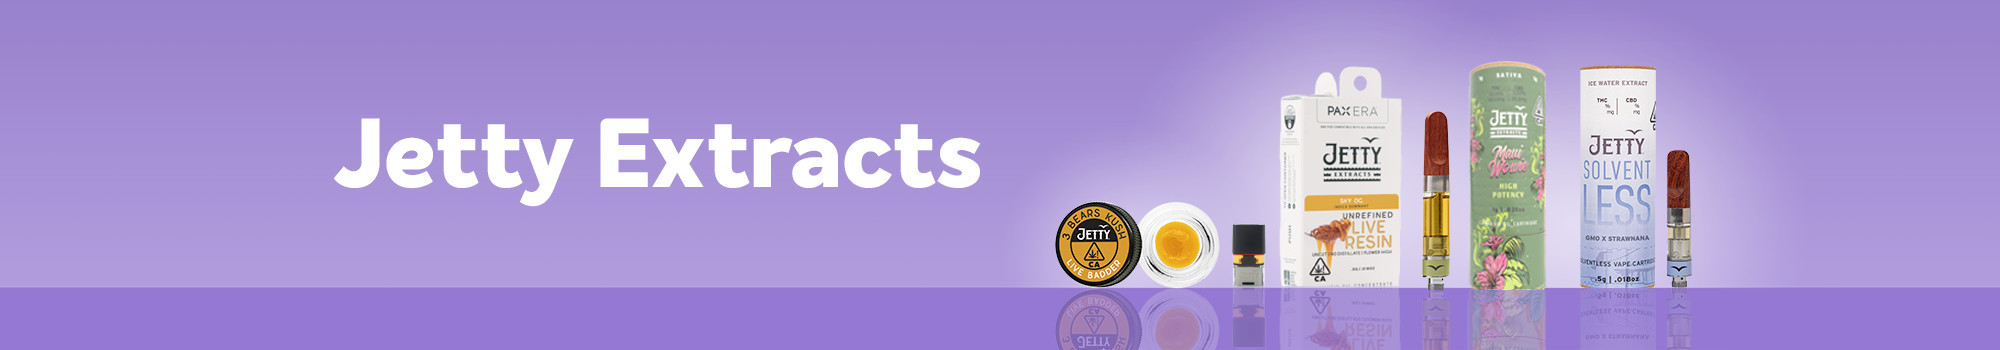 Jetty Extracts